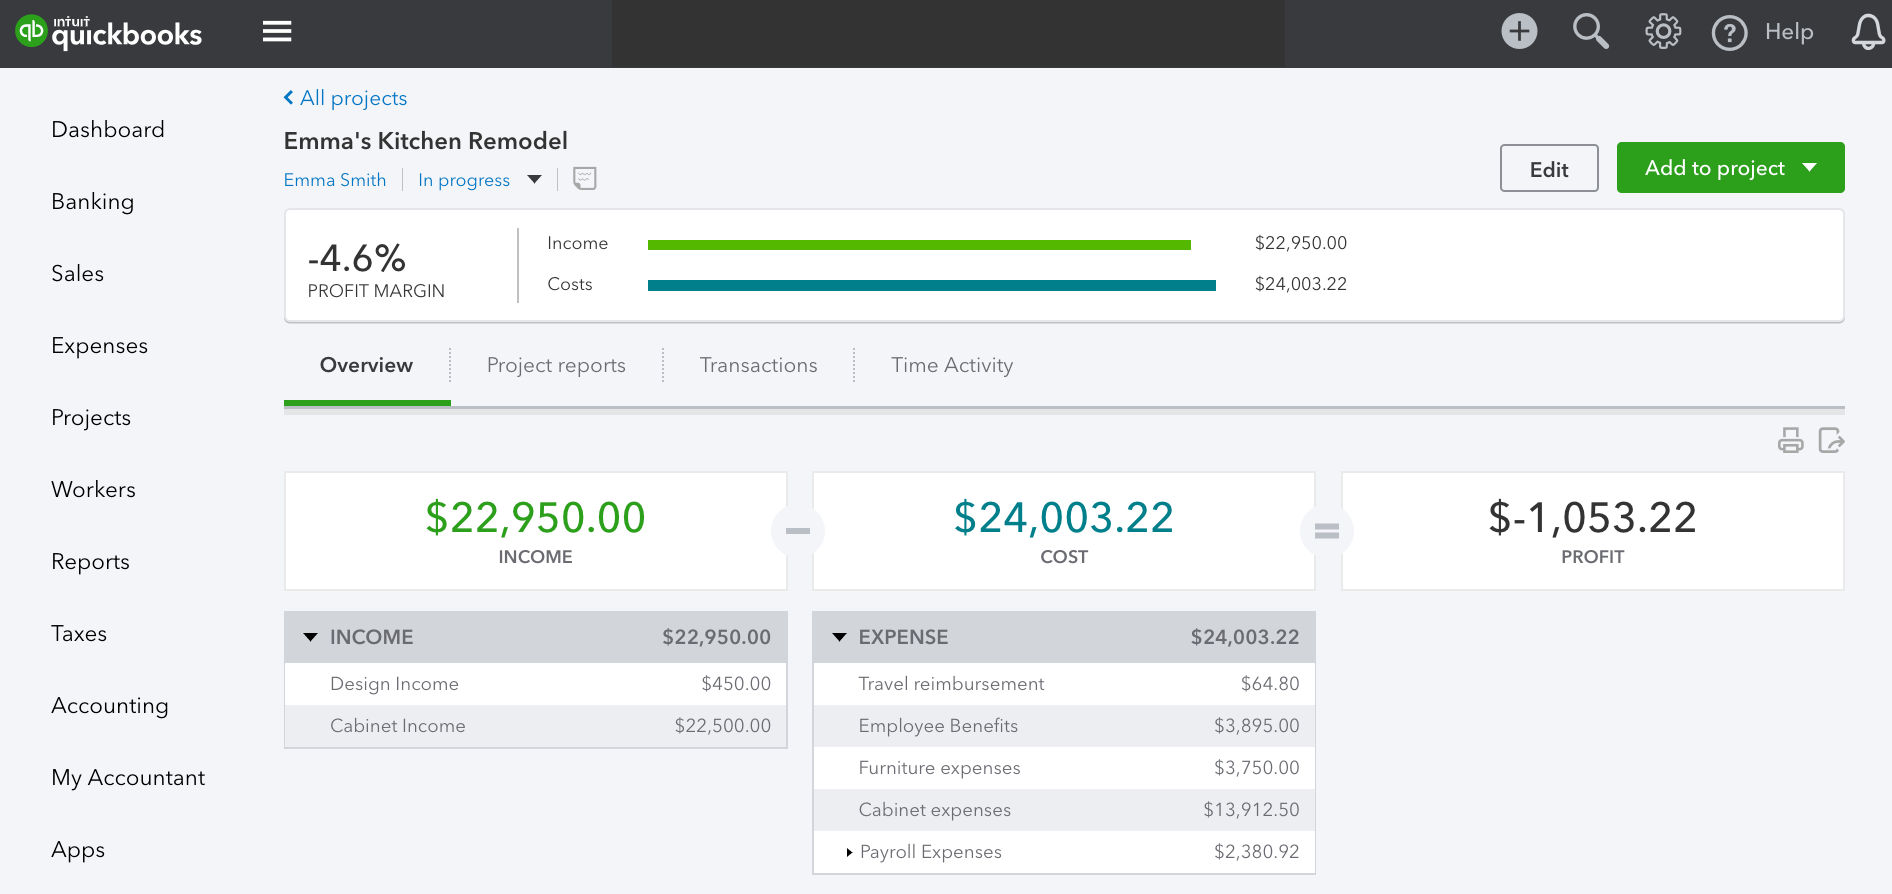 Track income, costs, and profitability by project - Project Overview tab